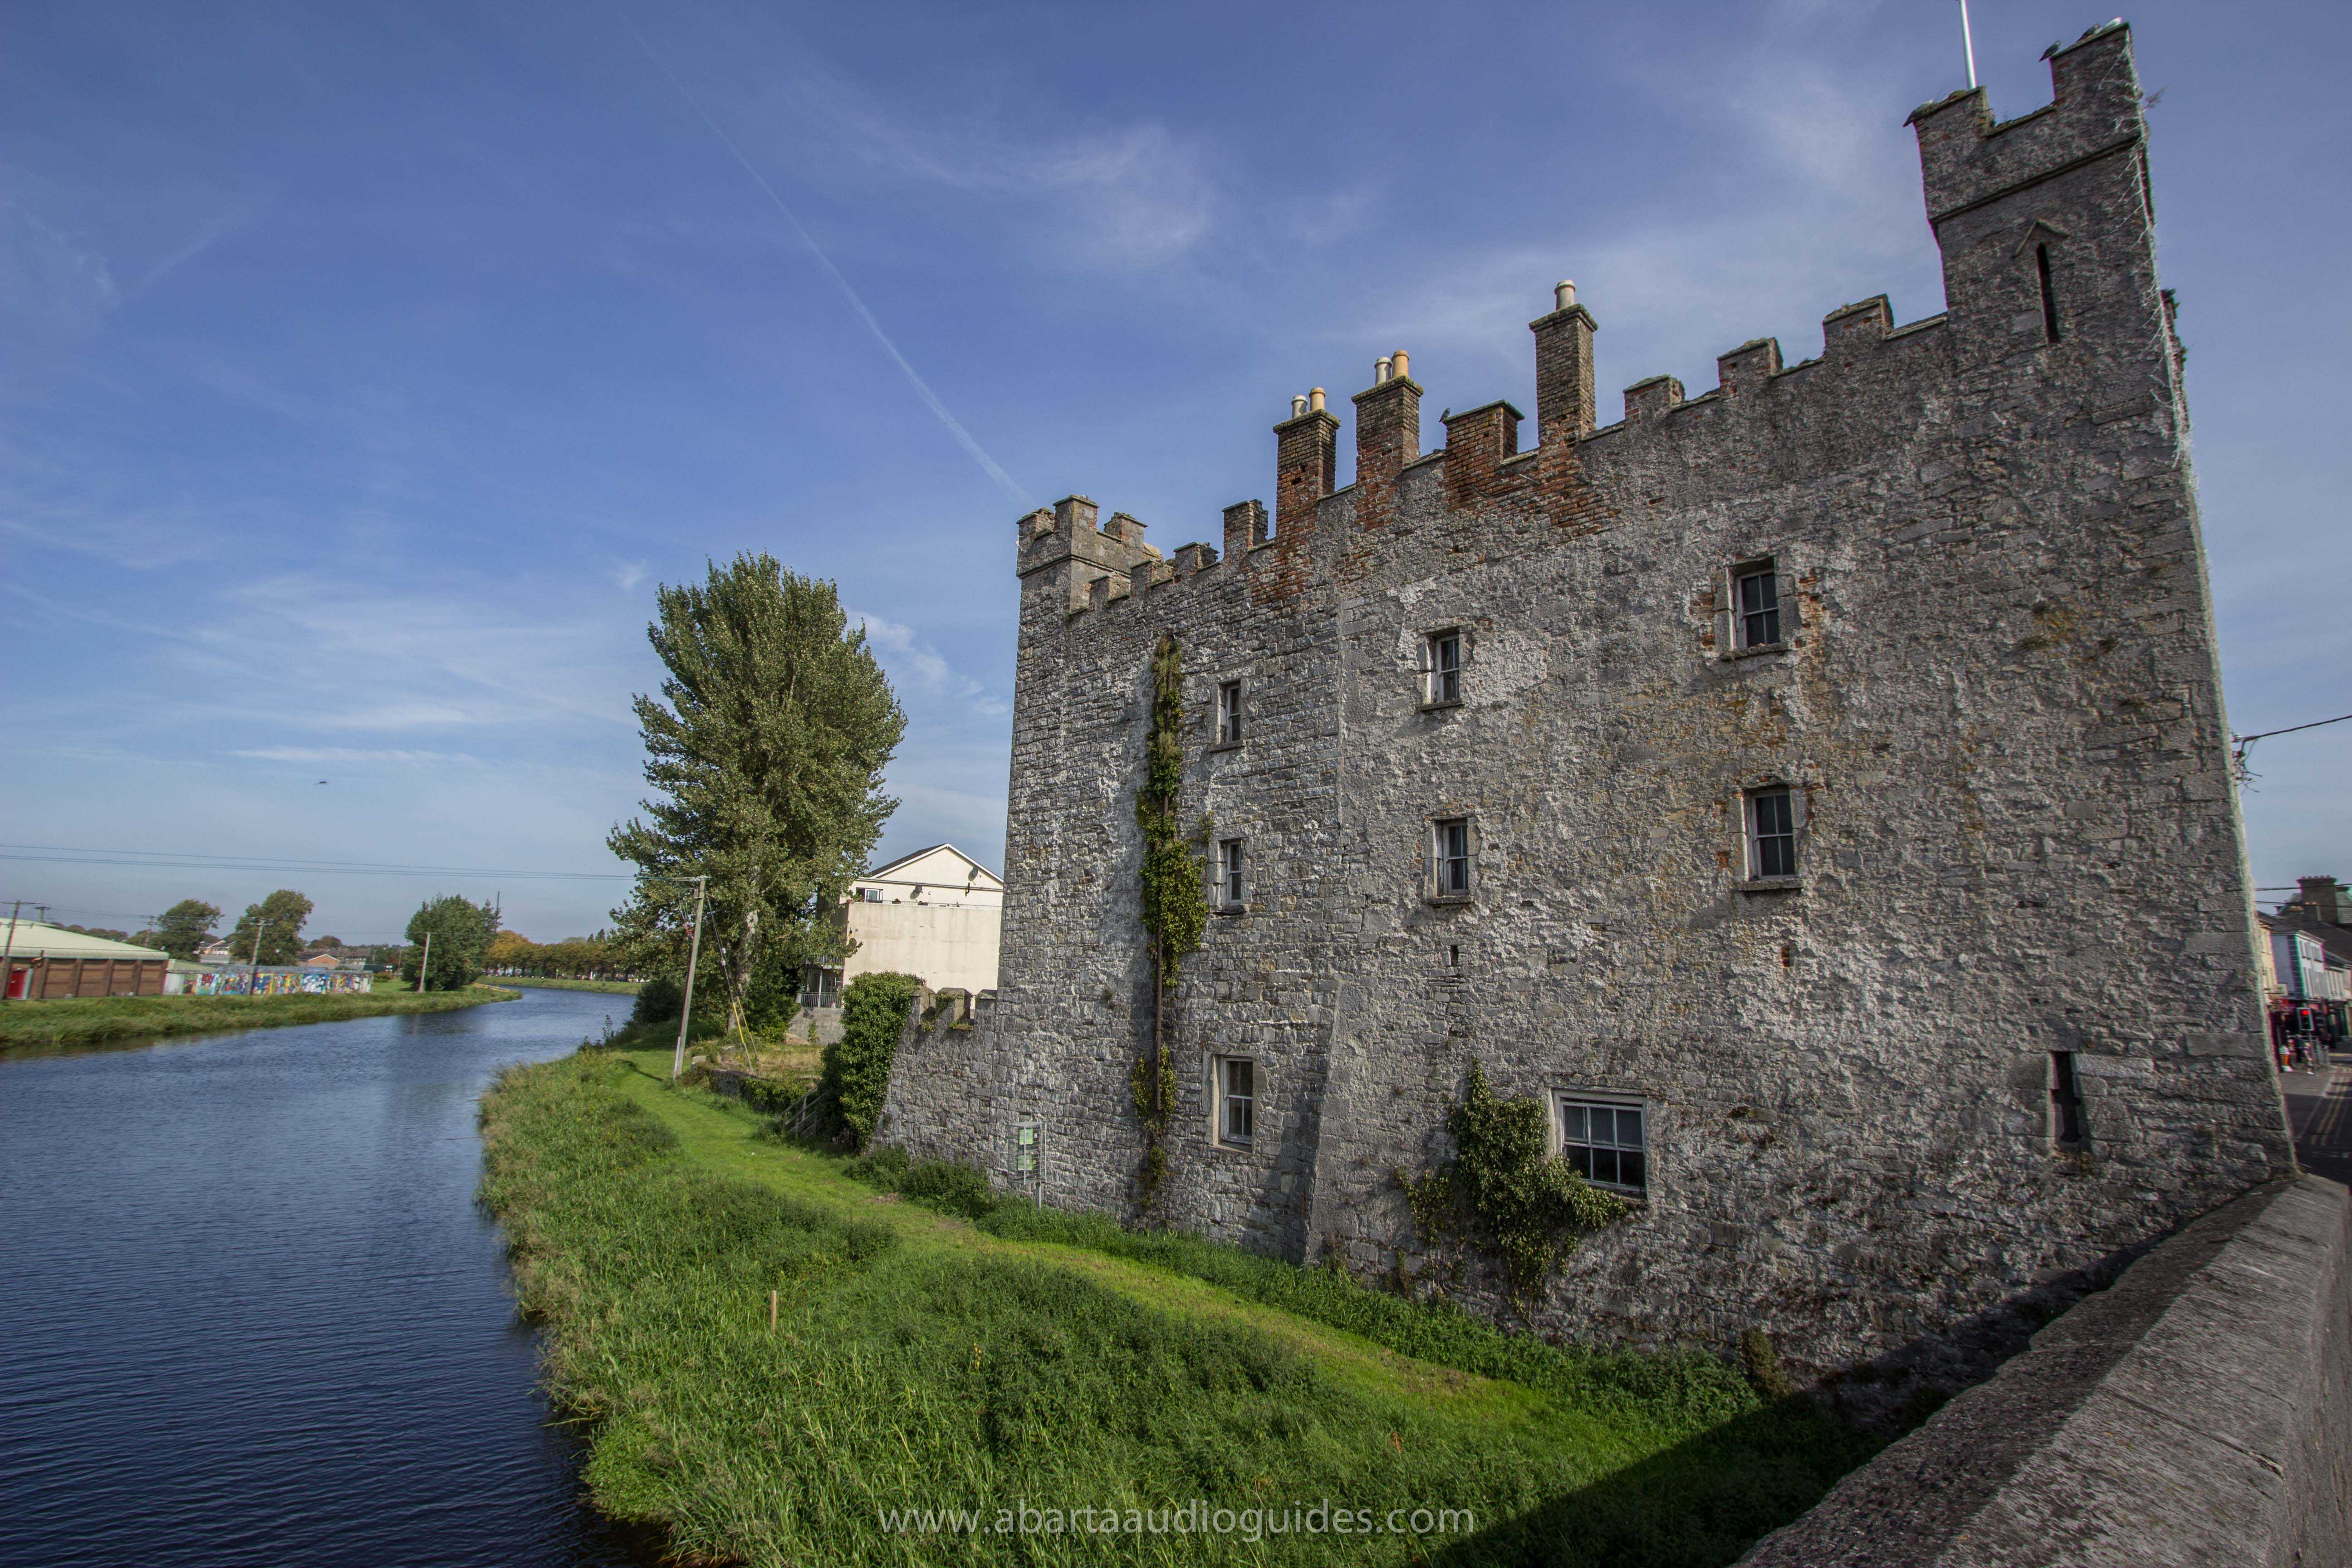 Hotels in Athy, Ireland - Trivago